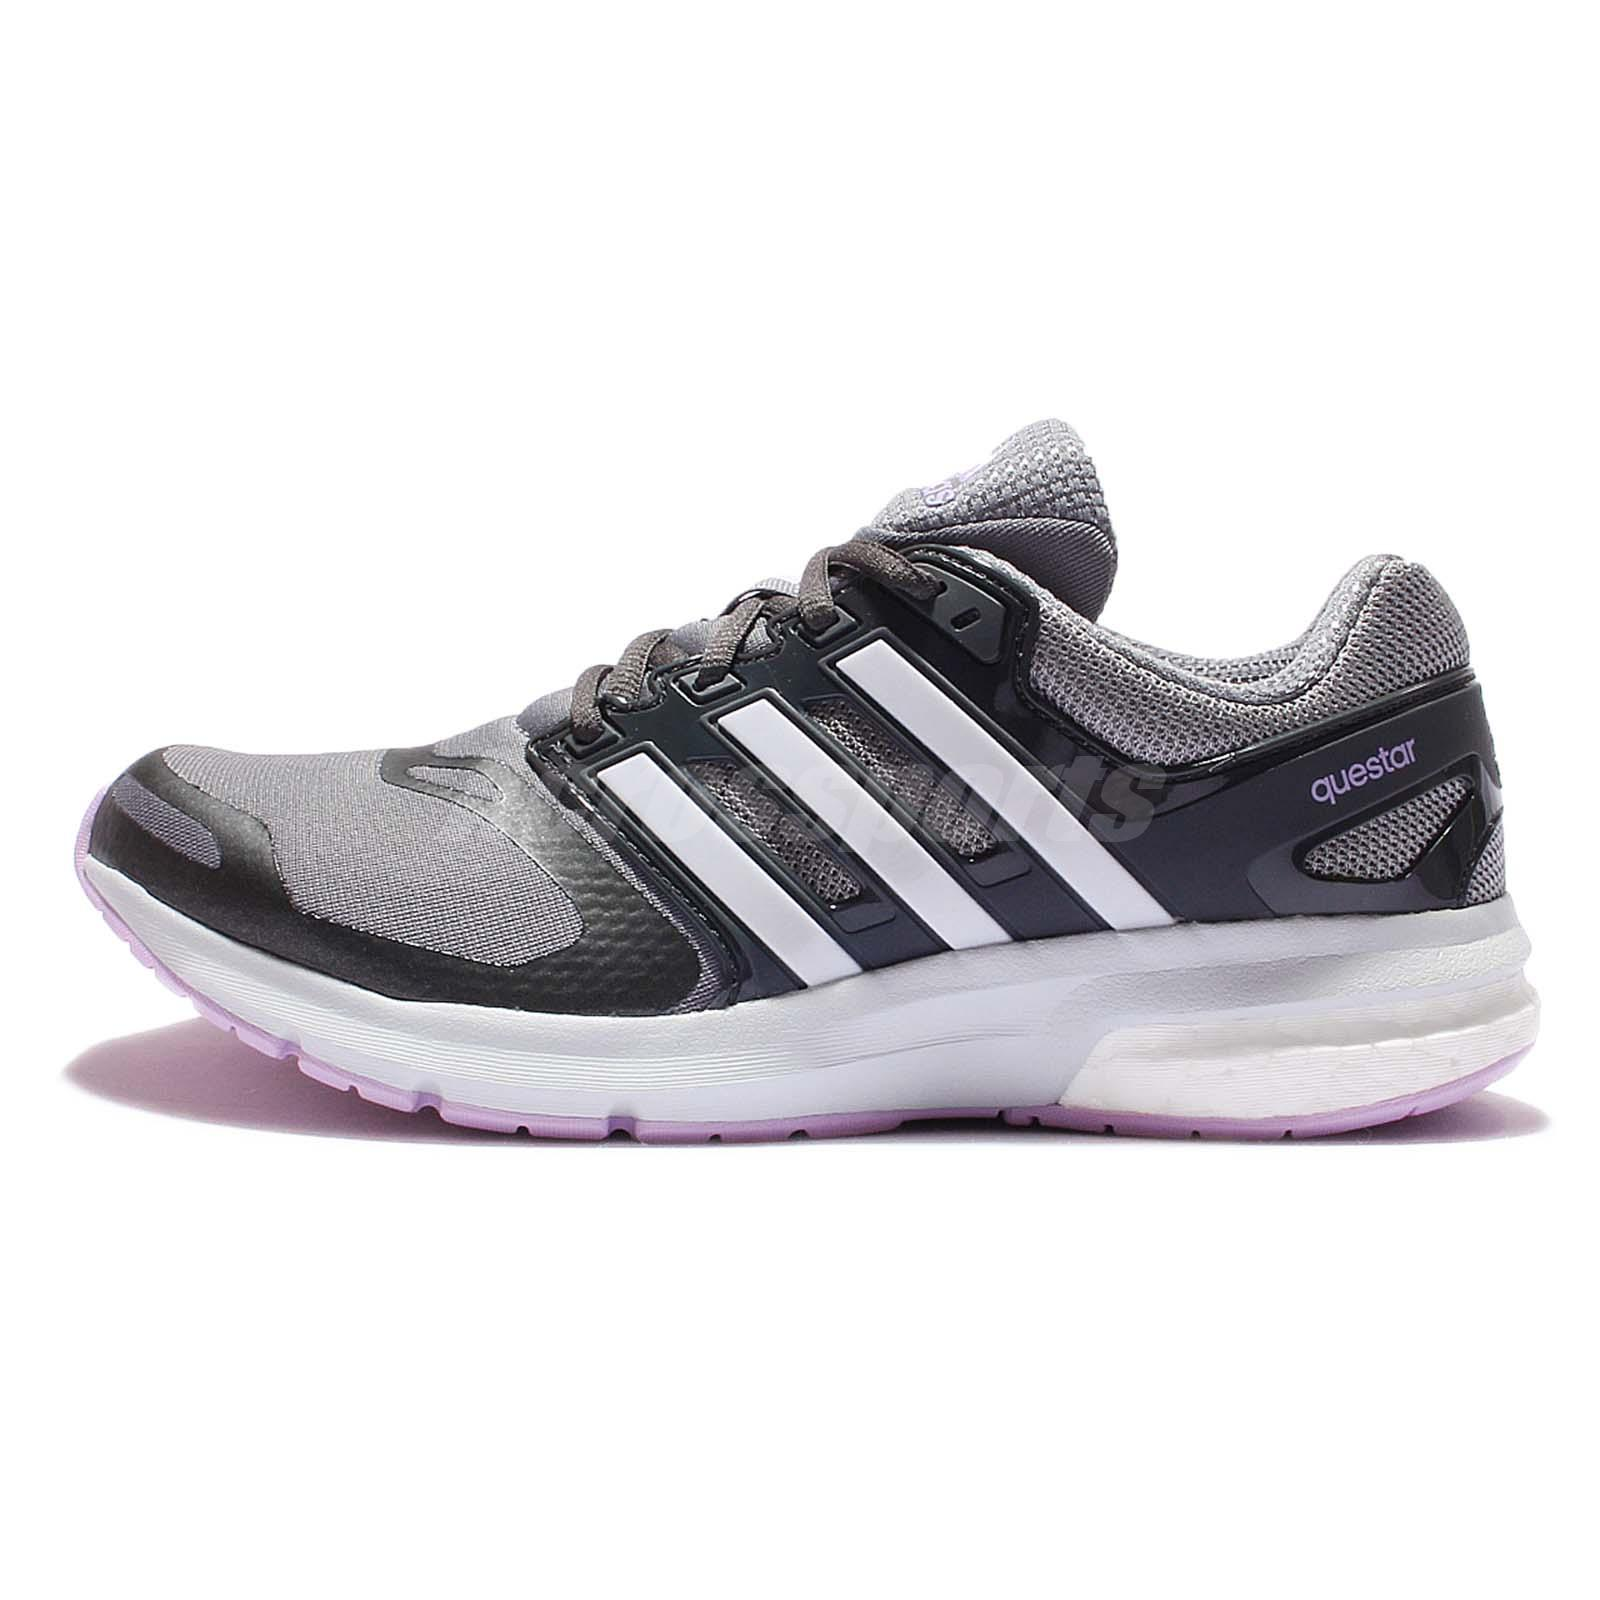 adidas Questar TF W Torsion Grey Purple Womens Running Trainers Sneakers AQ6635